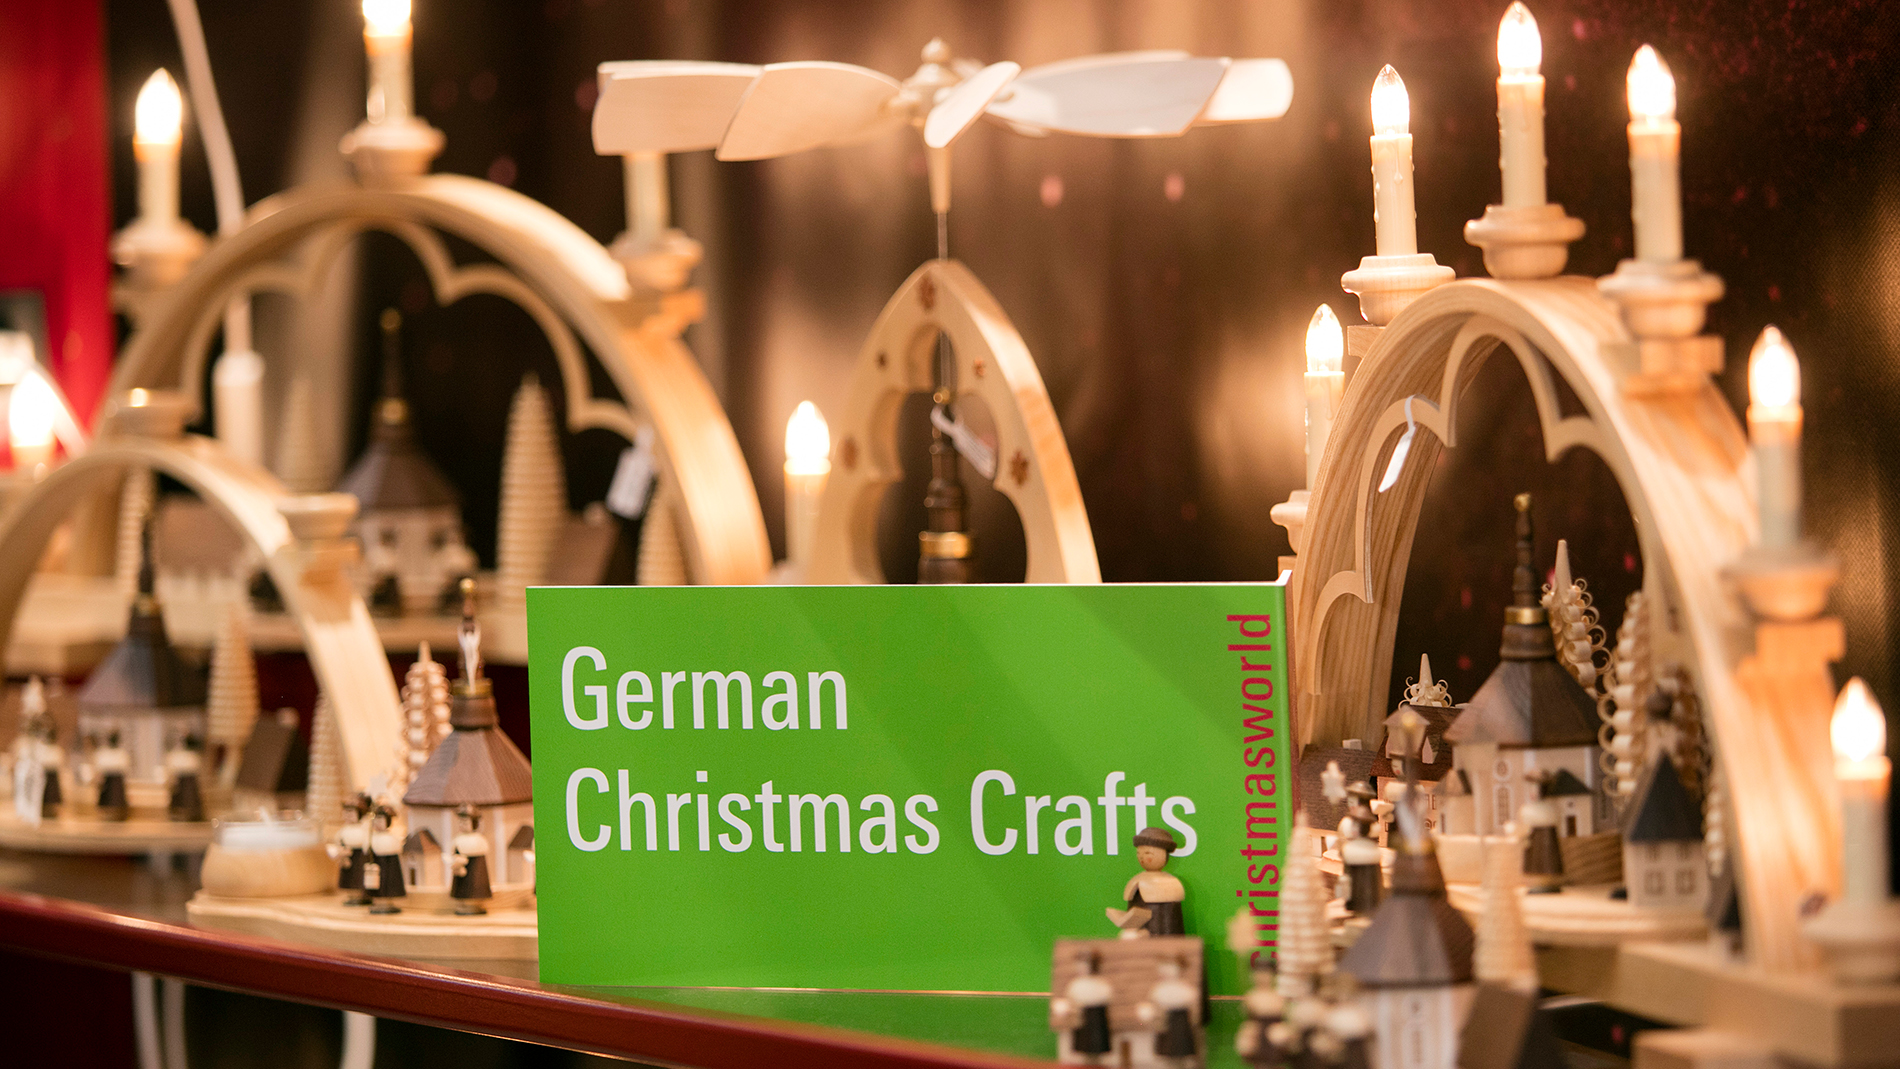 German Christmas Crafts logo at an exhibition stand at Christmasworld